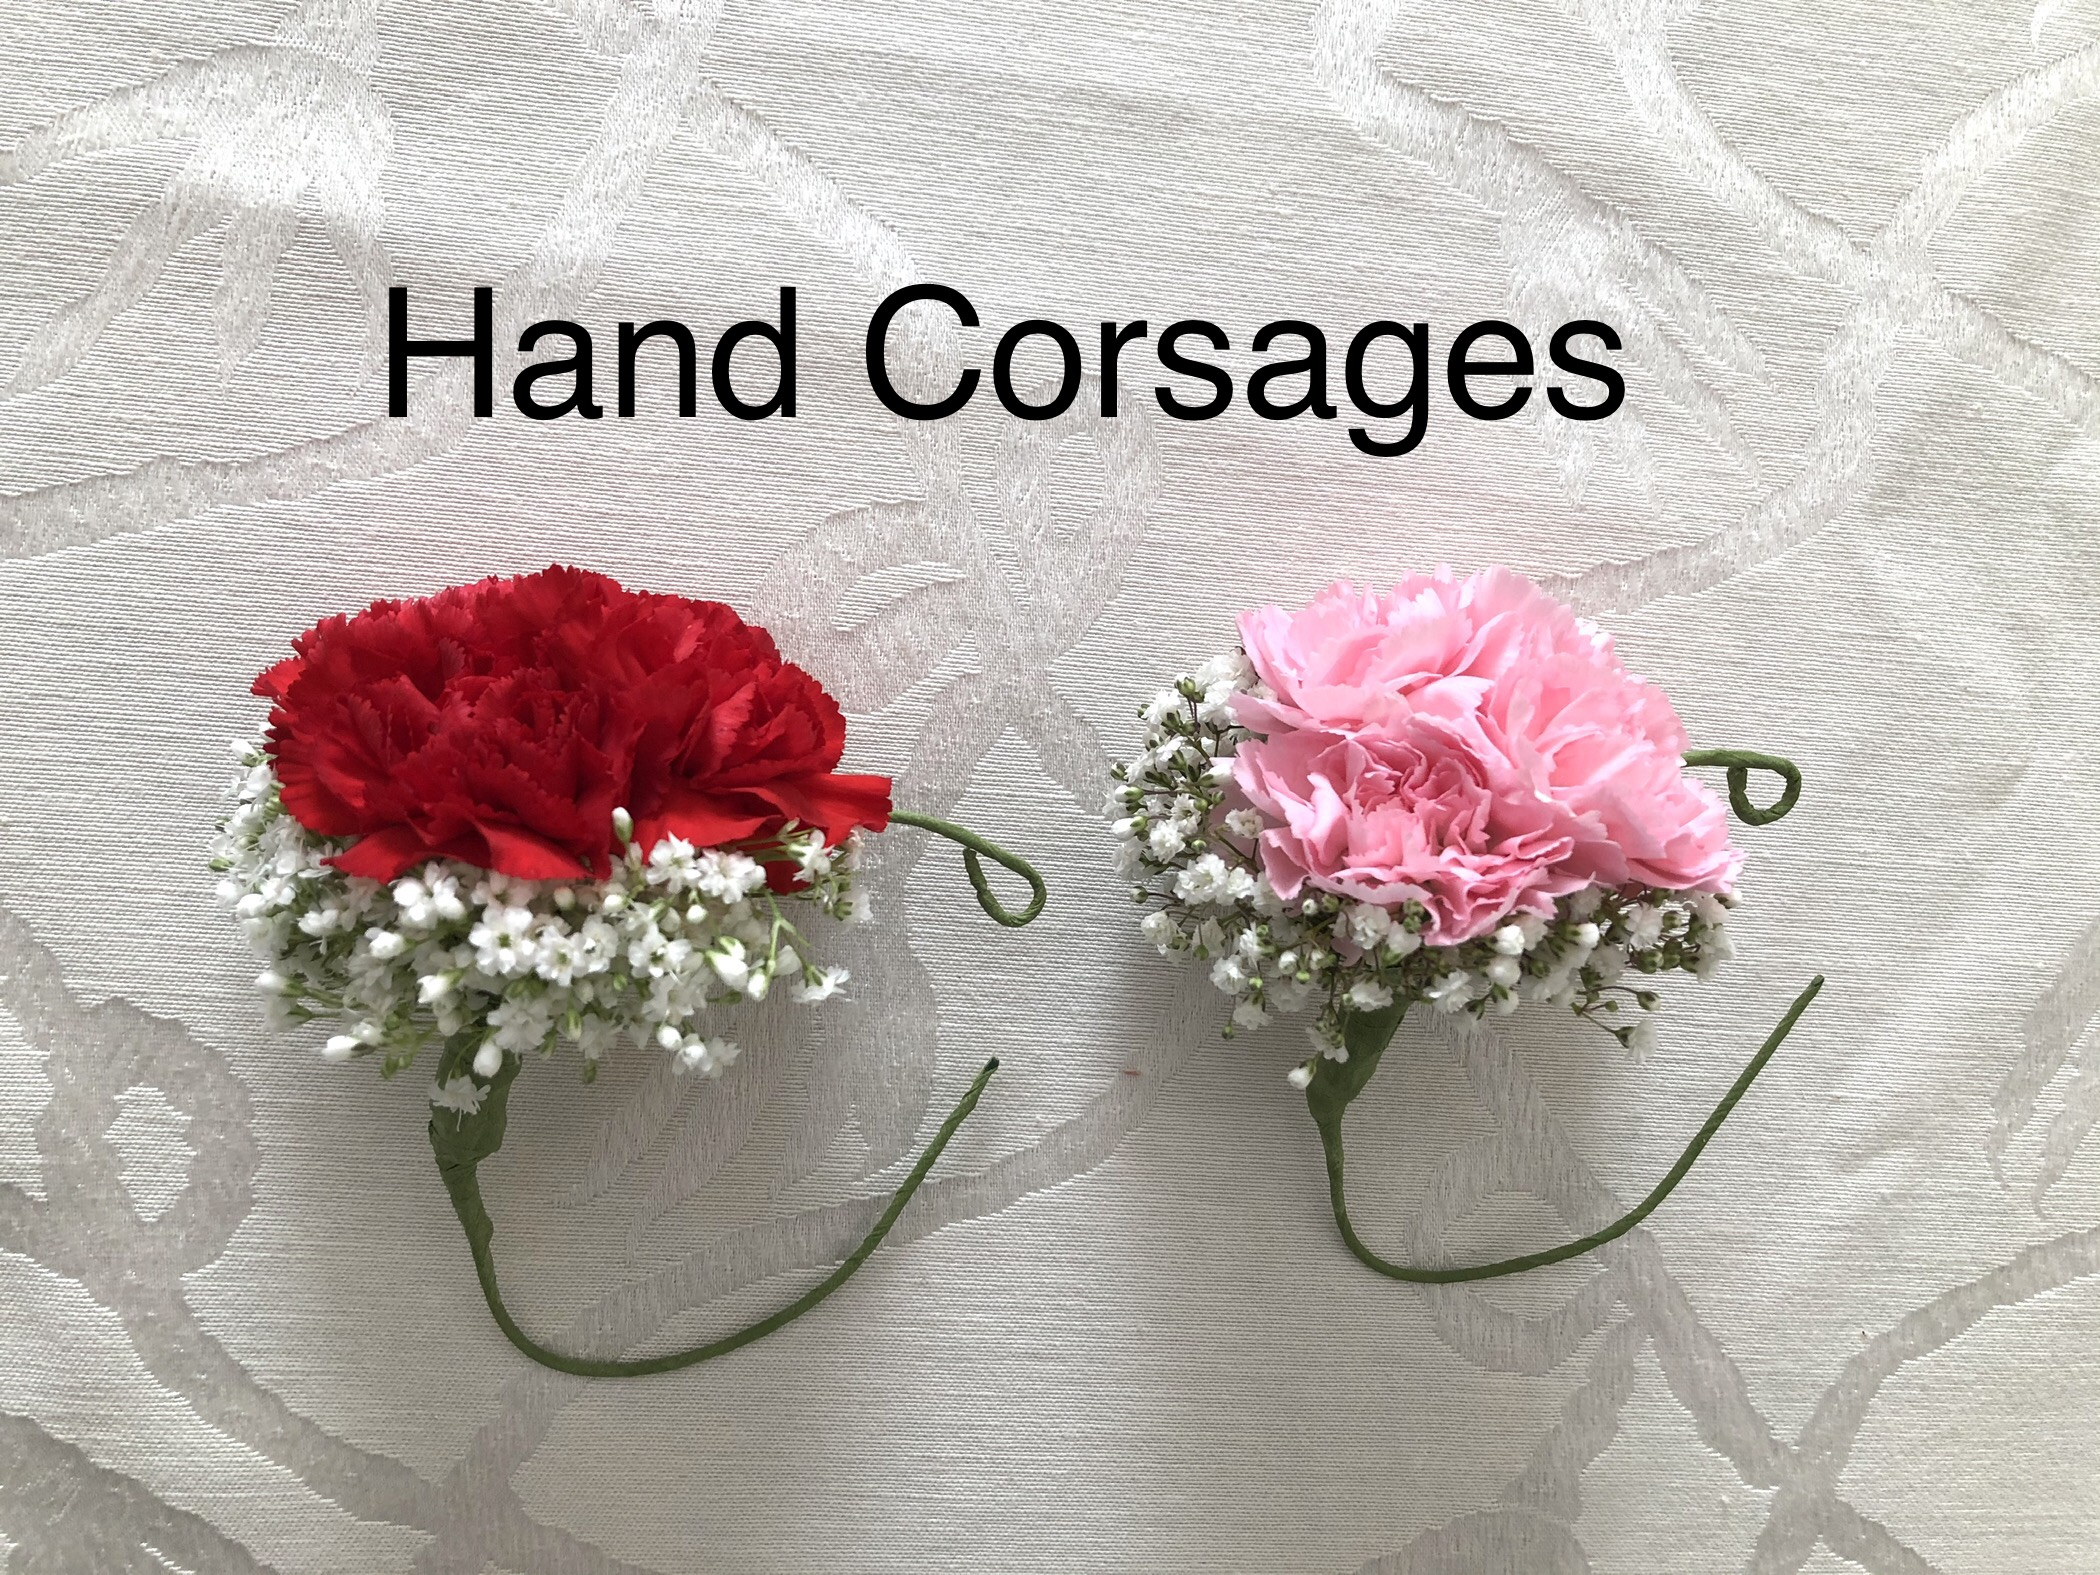 Hand Corsages